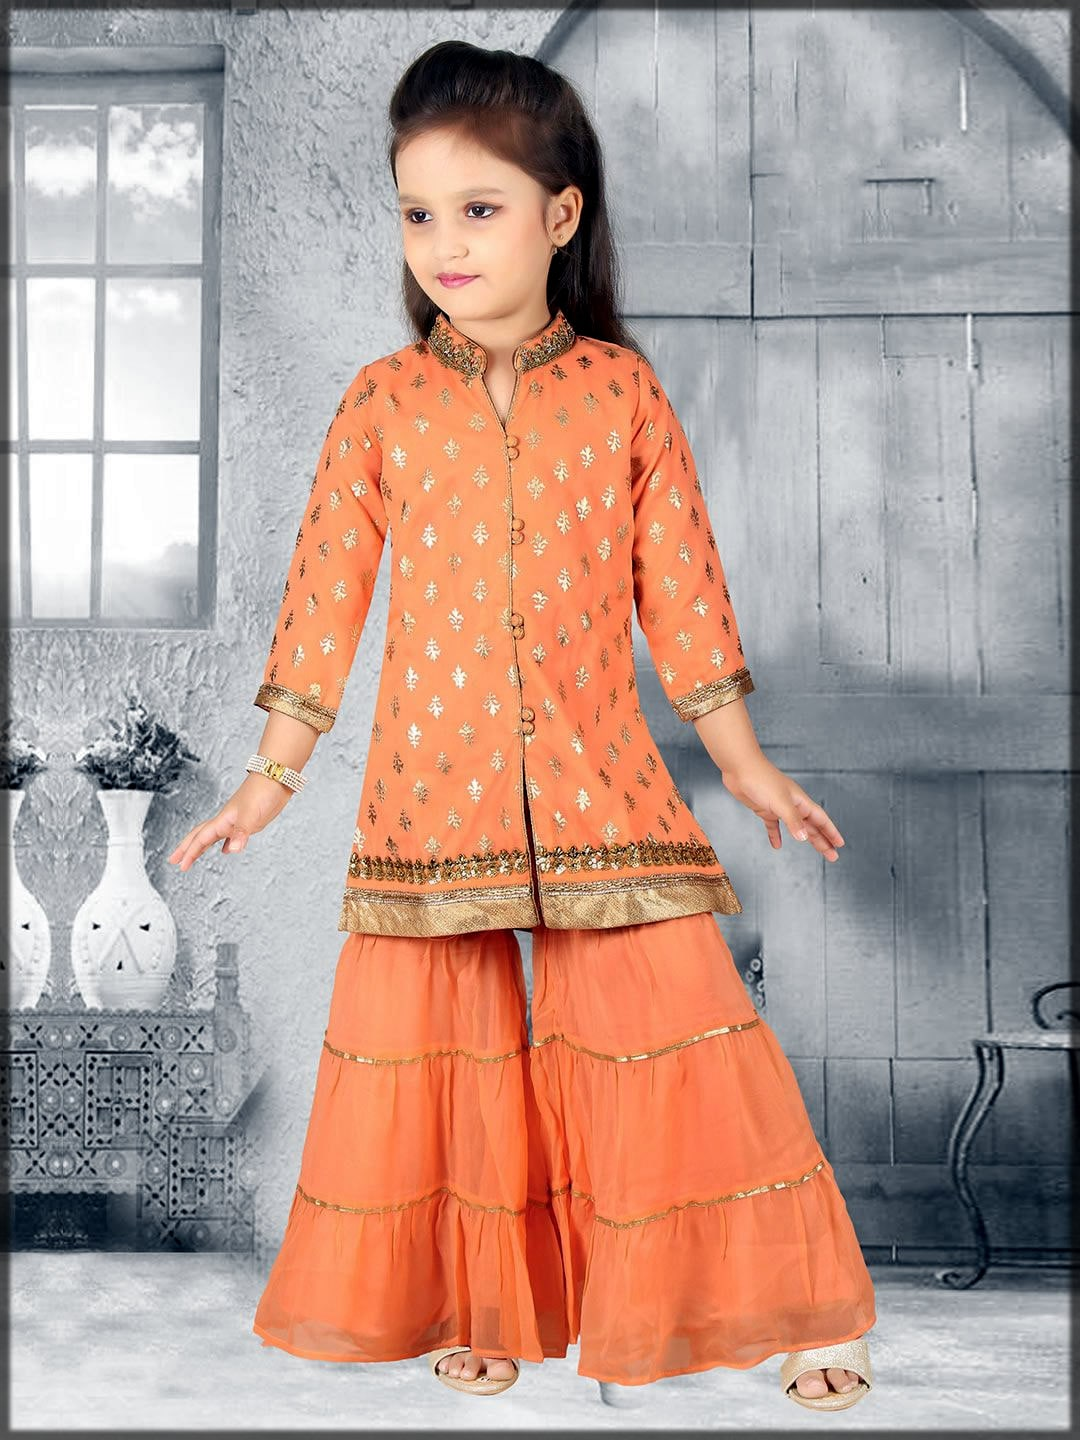 Orange sharara dress for baby girl